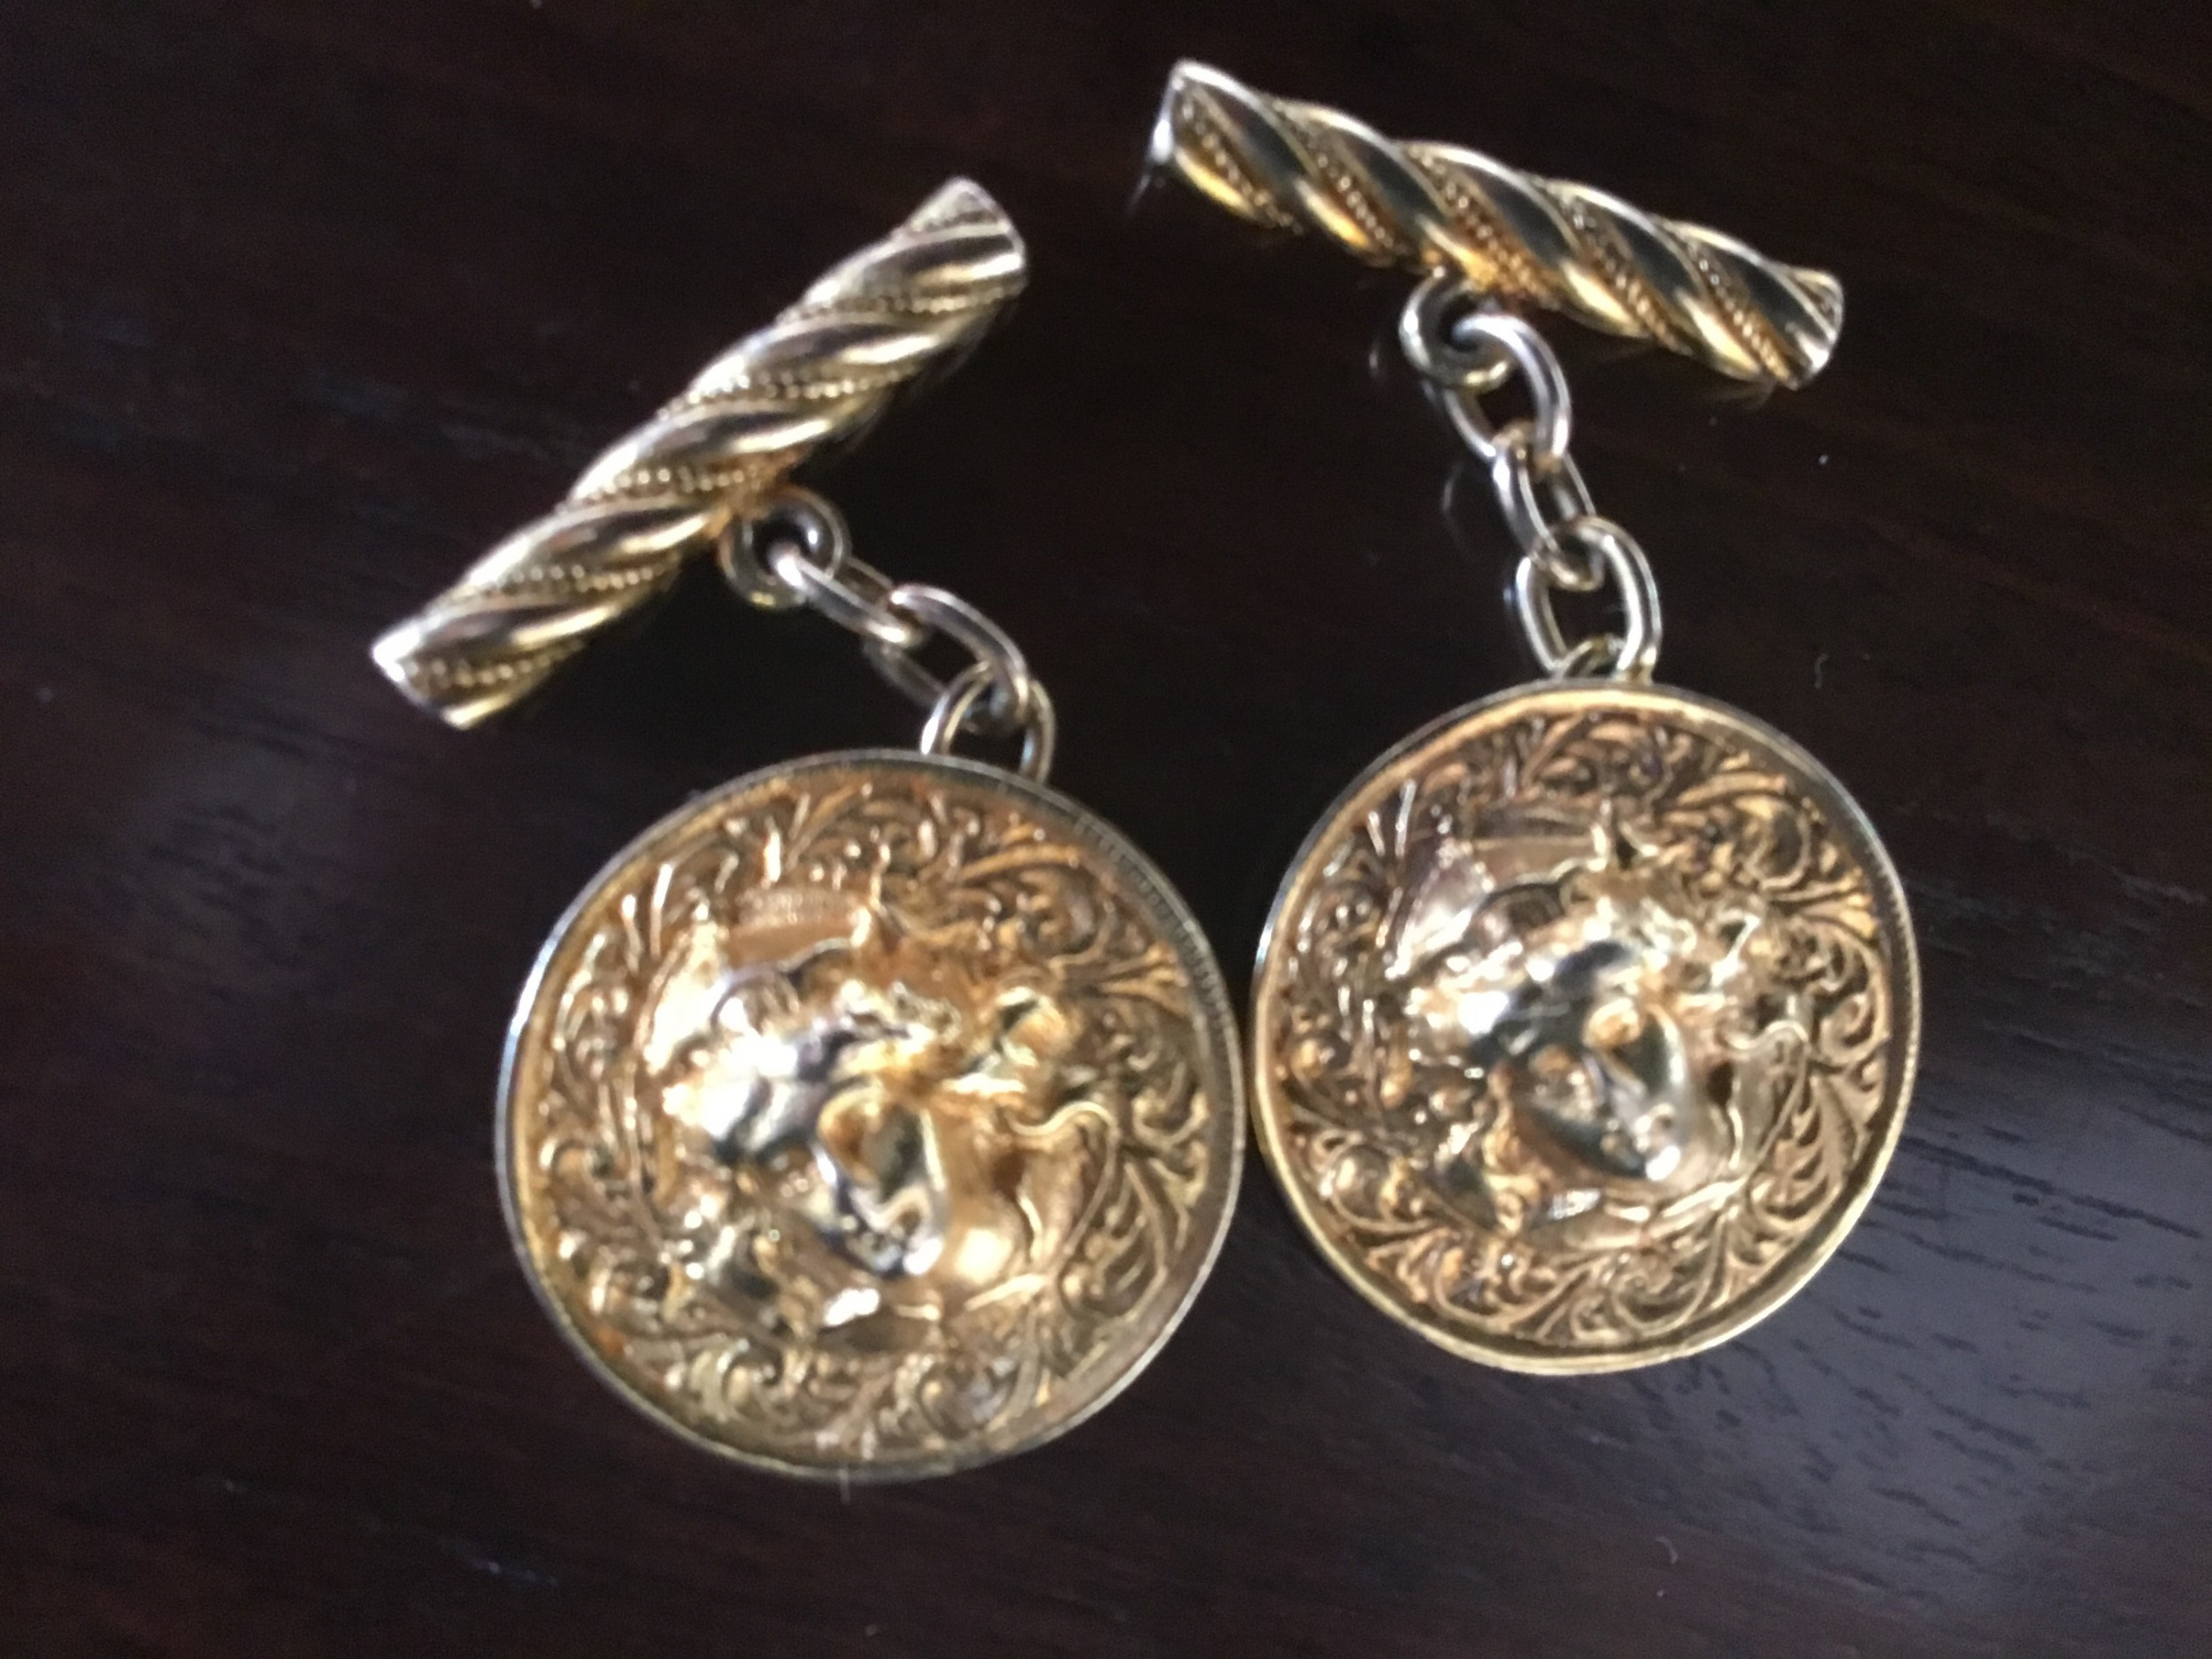 elegant and rare gents 9 ct gold cuff links circa 1950